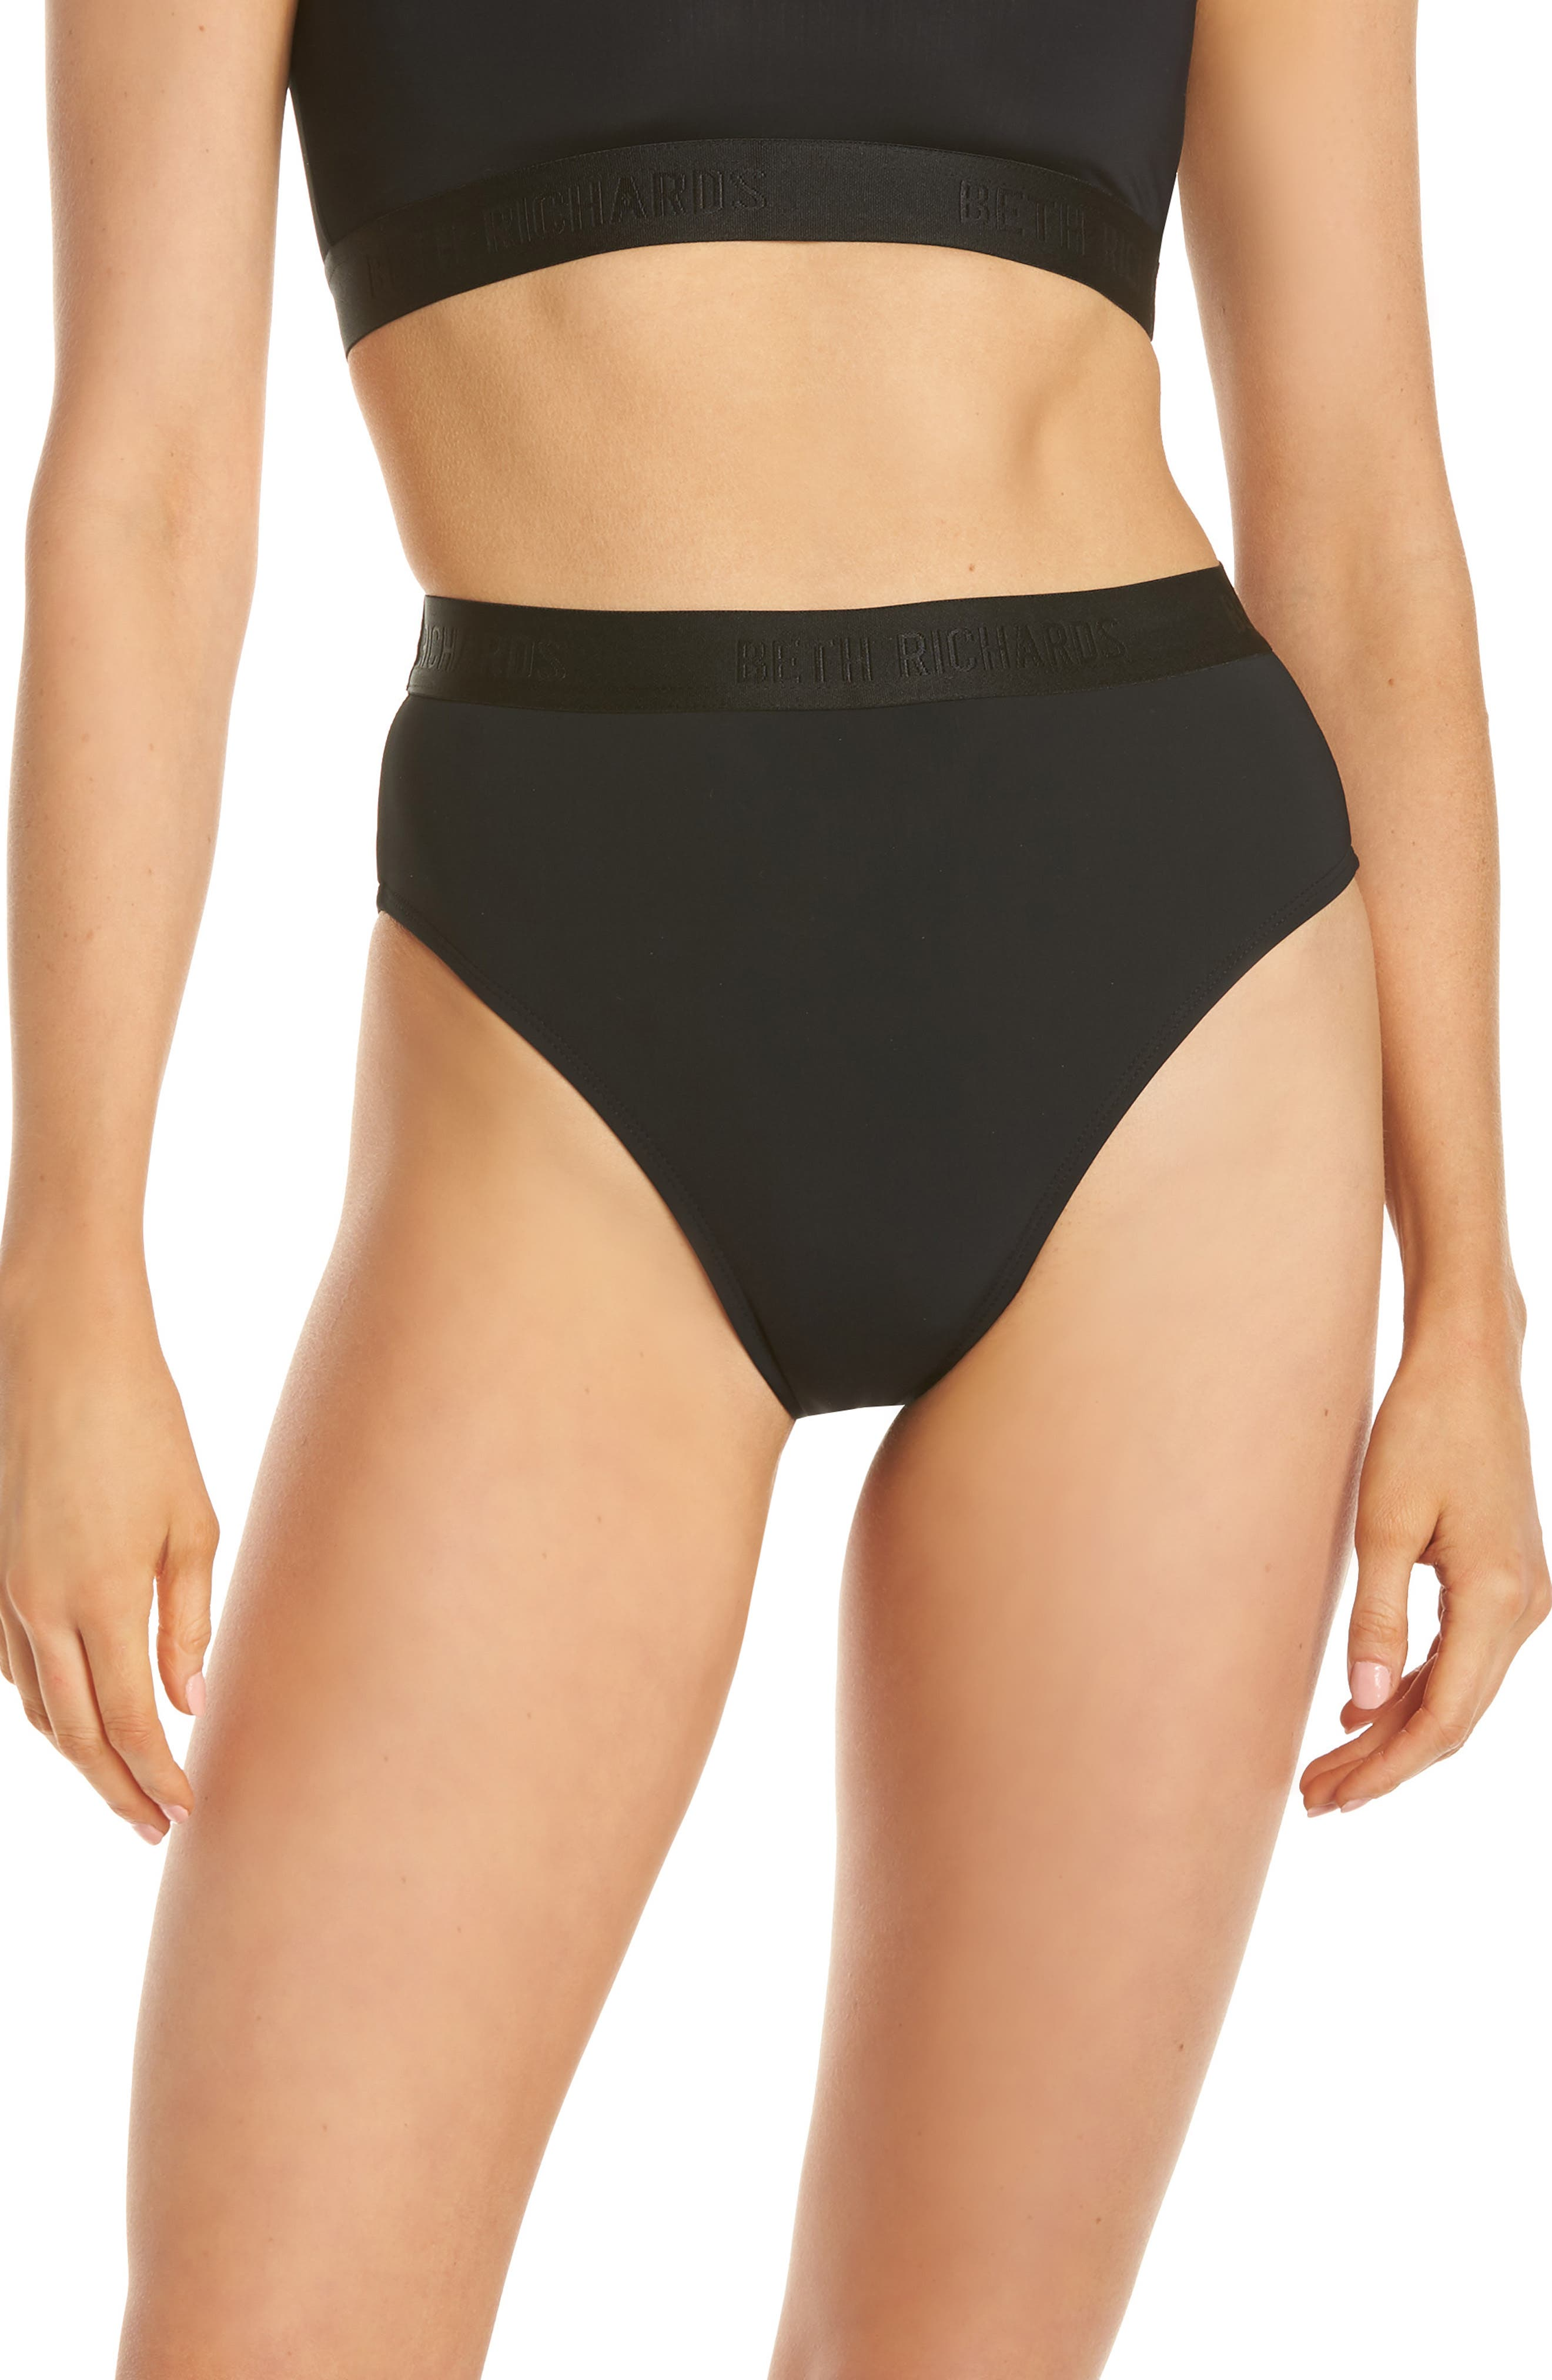 Beth Richards Kim High Waist Bikini Bottoms, Black